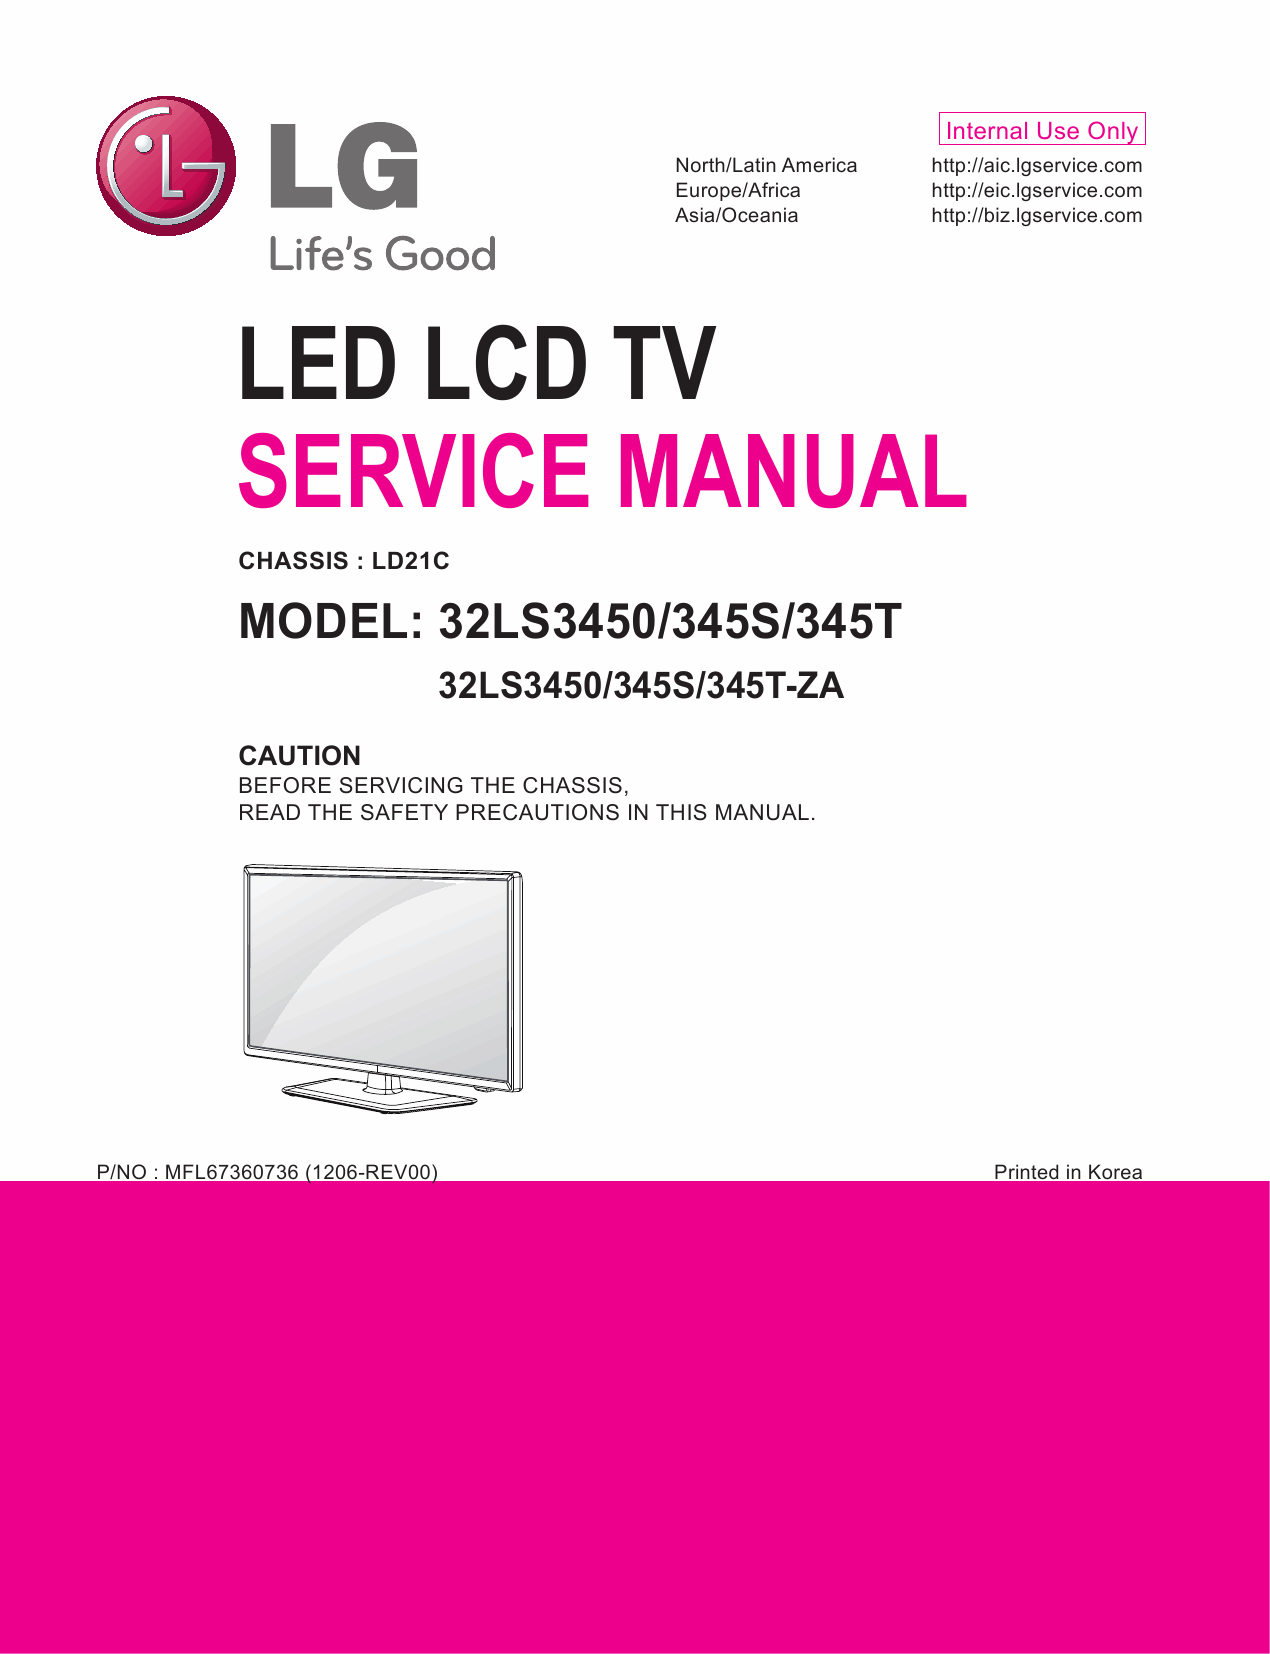 LG_LED_TV_32LS3450_345S_345T_Service_Manual_2012_Qmanual.com-1